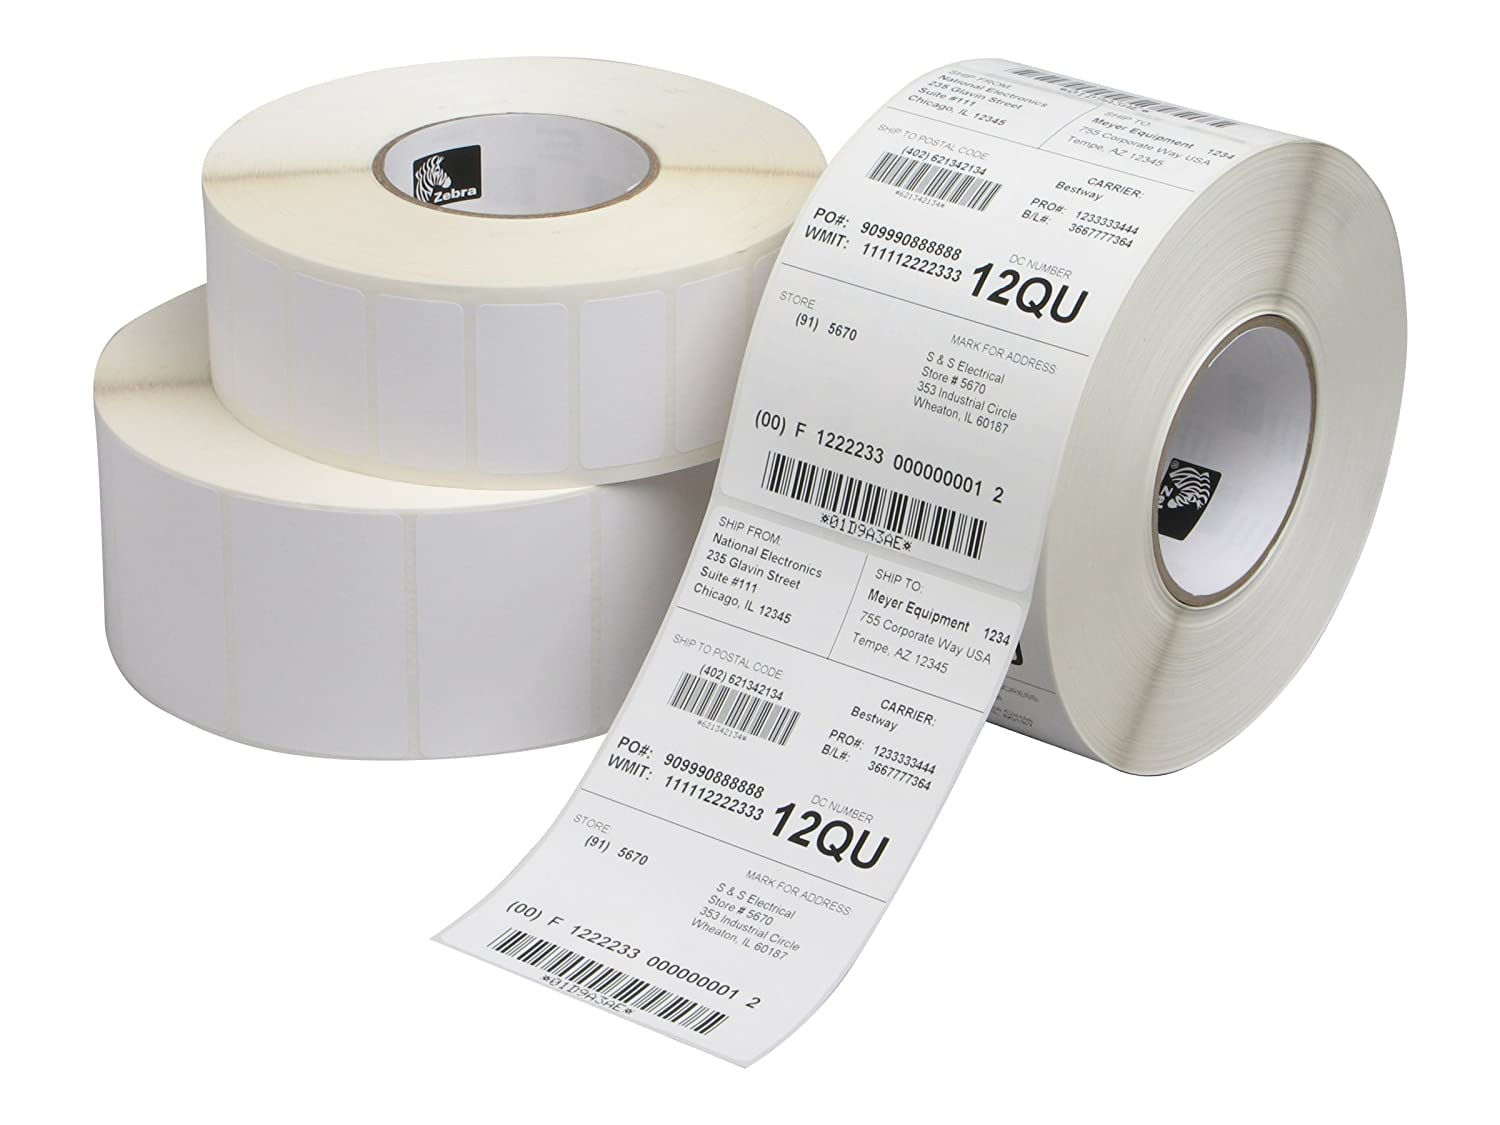 Zebra 2700 Labels, 25 mm, Box of 800 Labels Perfo Box Of 6 3005869